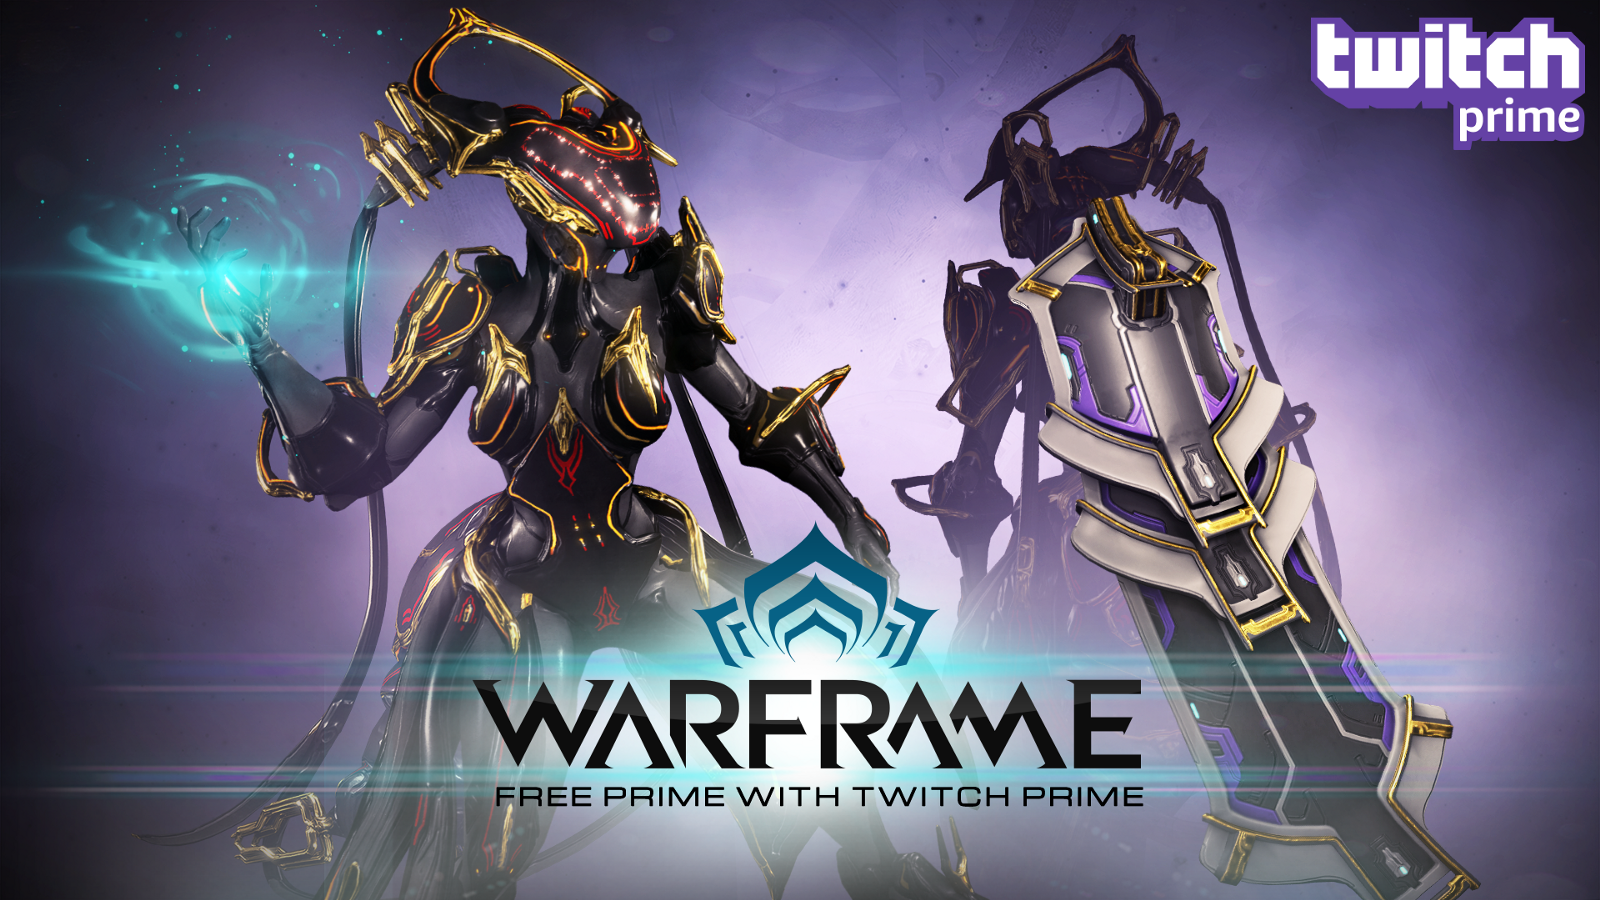 Twitch Prime Account World of Tanks / LoL/ Warframe/ R6